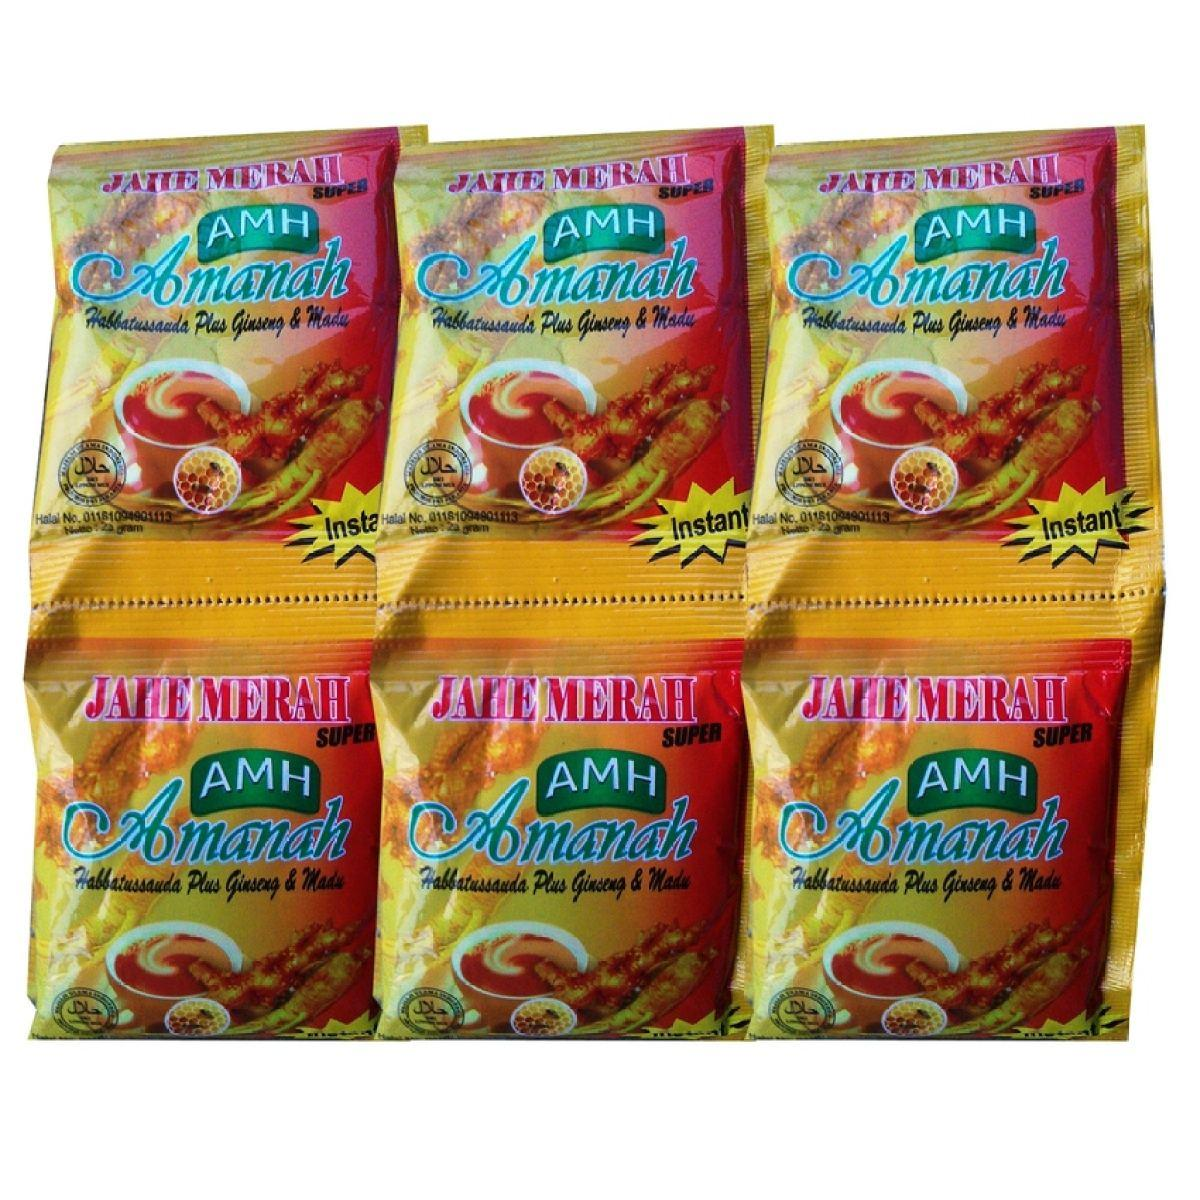 [ Paket 3 Renceng ] Amanah Jahe Merah Super Plus Ginseng Madu 12 Sachet By Hanifah Herbal.